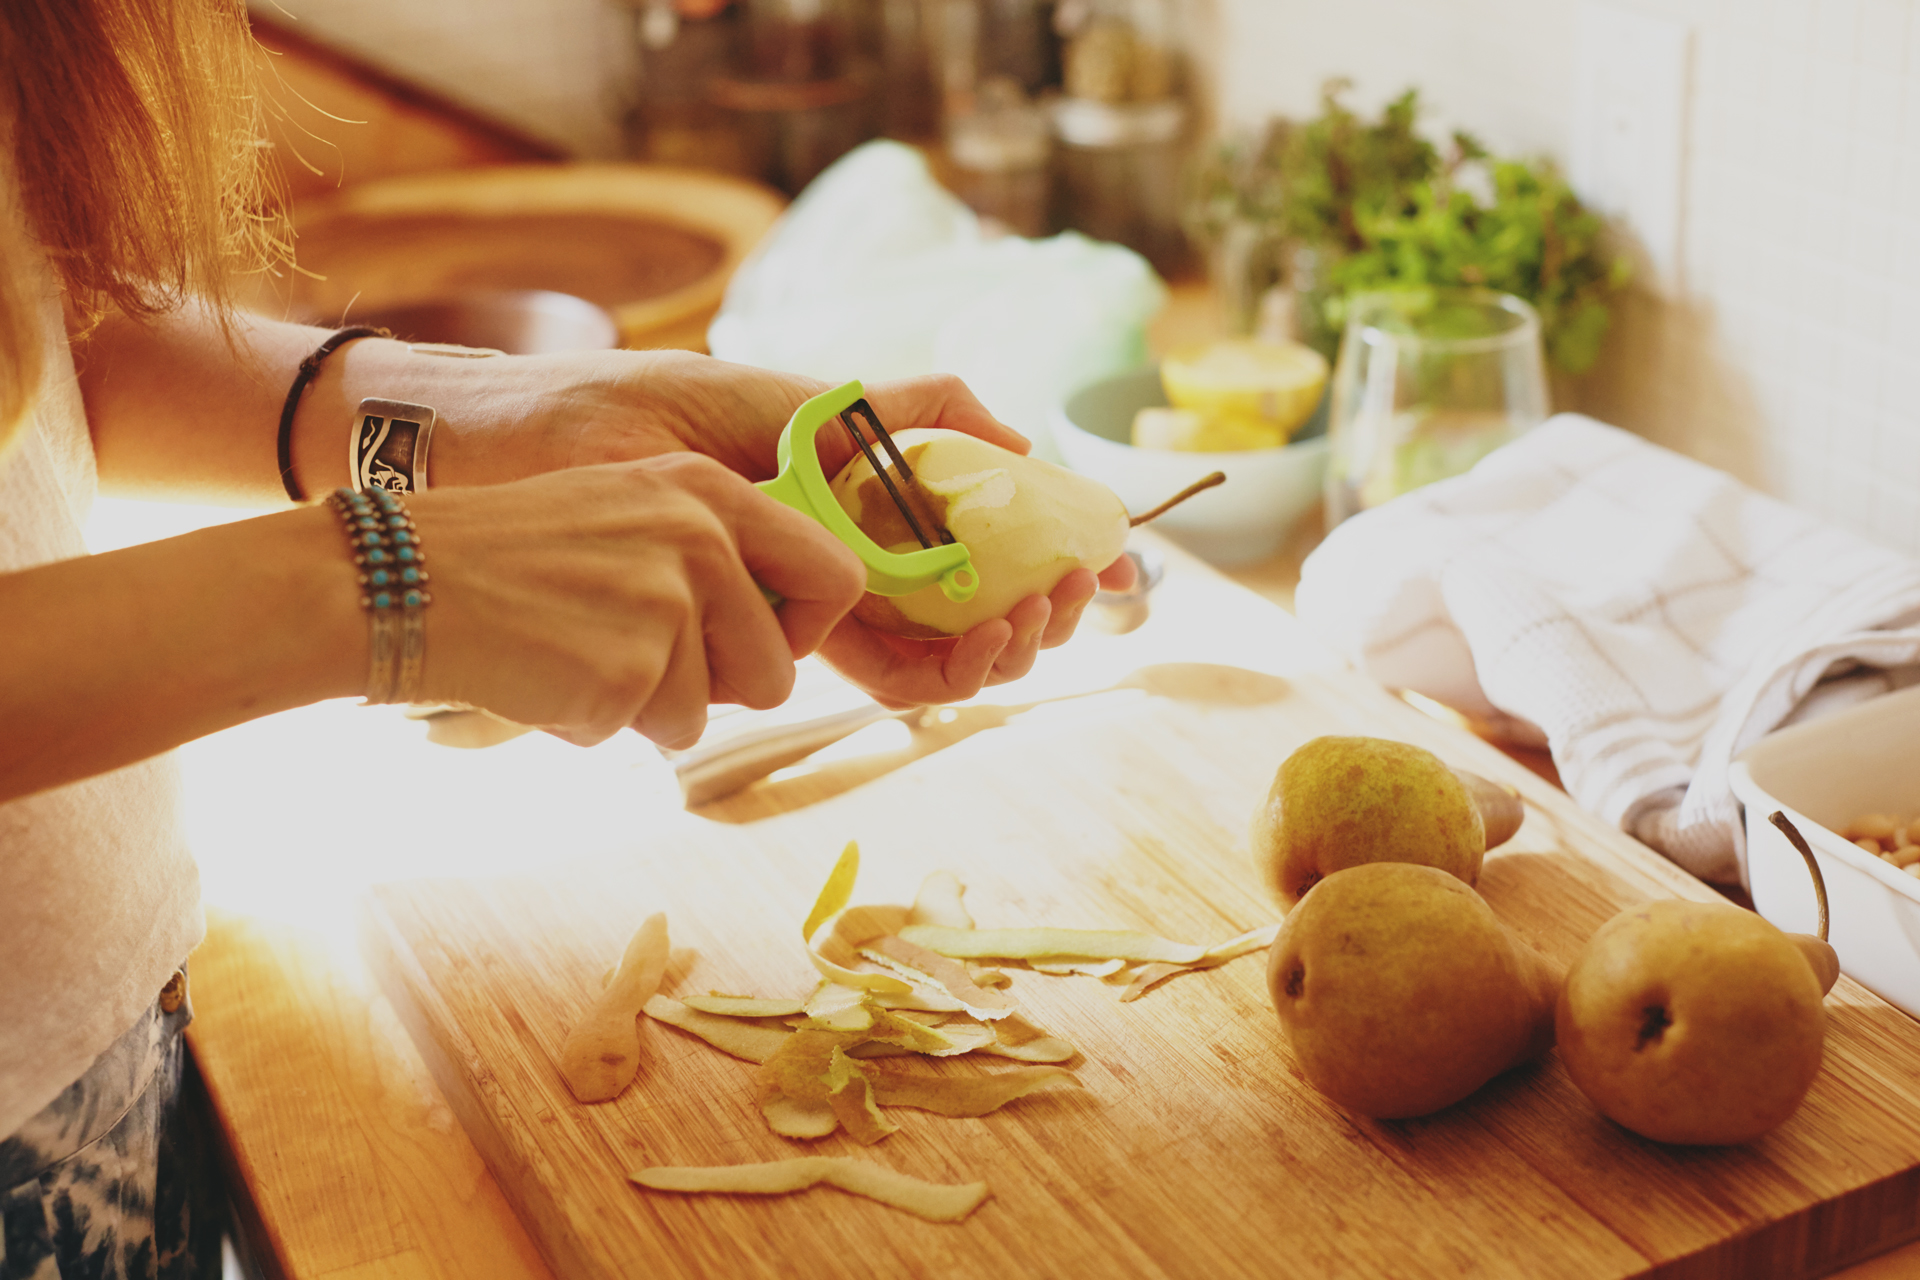 Ashley Neese Nutritional Counsellor prepares poached pears for Foodadit in Los Angeles